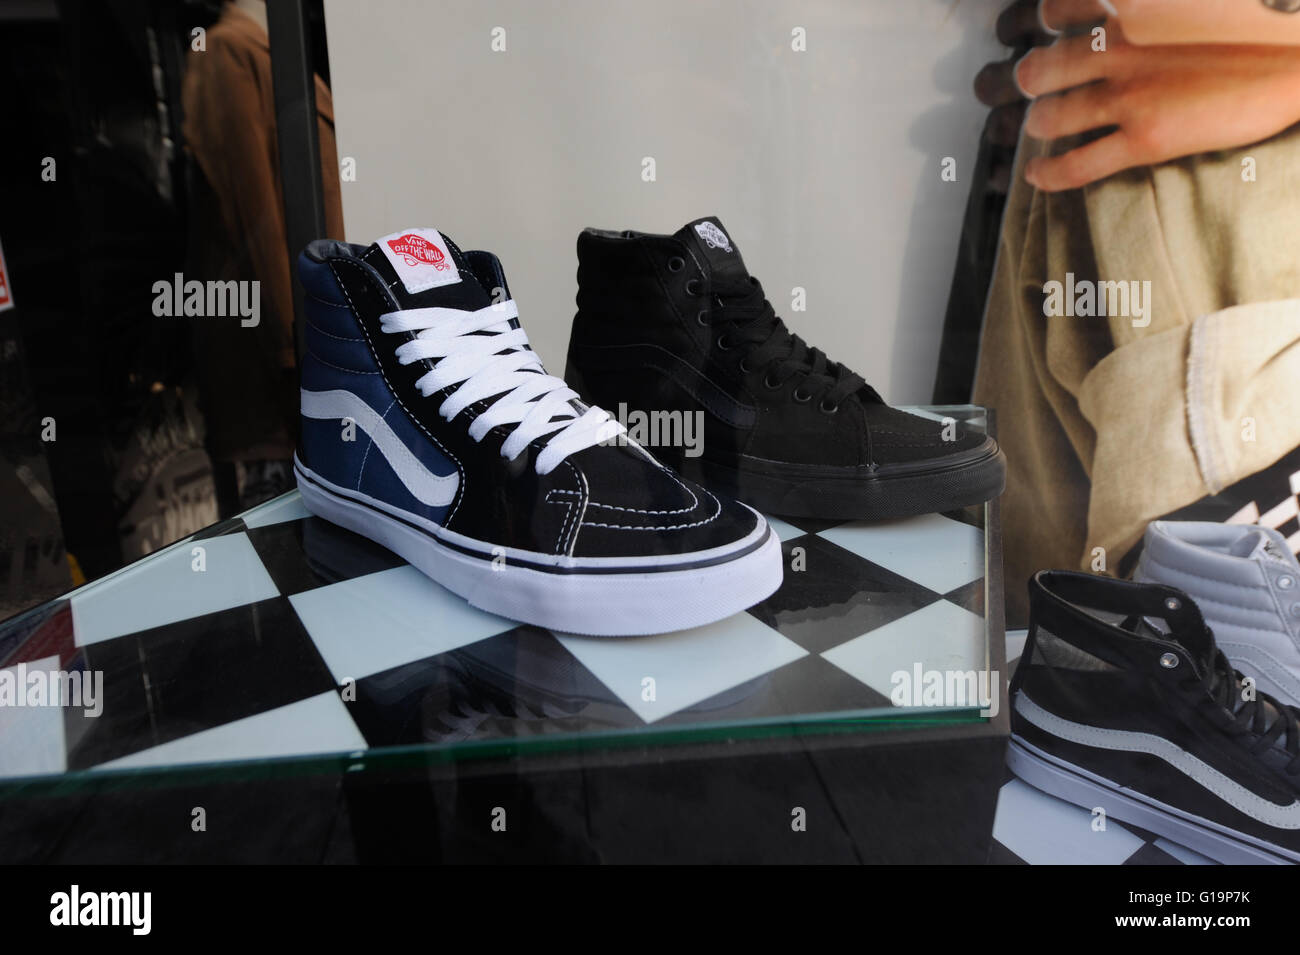 Vans shoes on display in Store in Cardiff  - United Kingdom Stock Photo